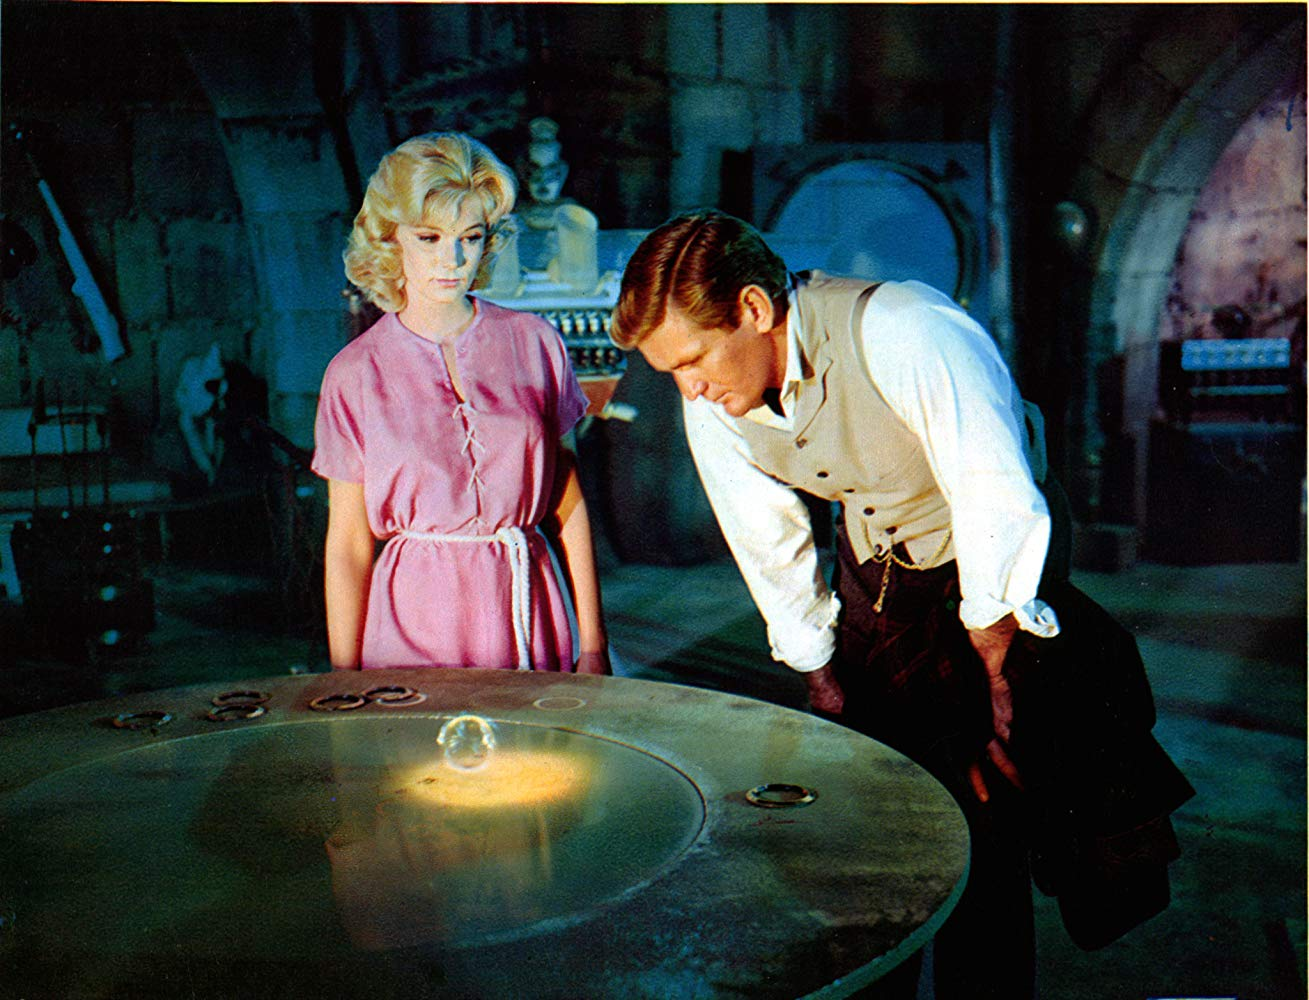 Weena (Yvette Mimieux) shows George (Rod Taylor) the history ring in The Time Machine (1960)